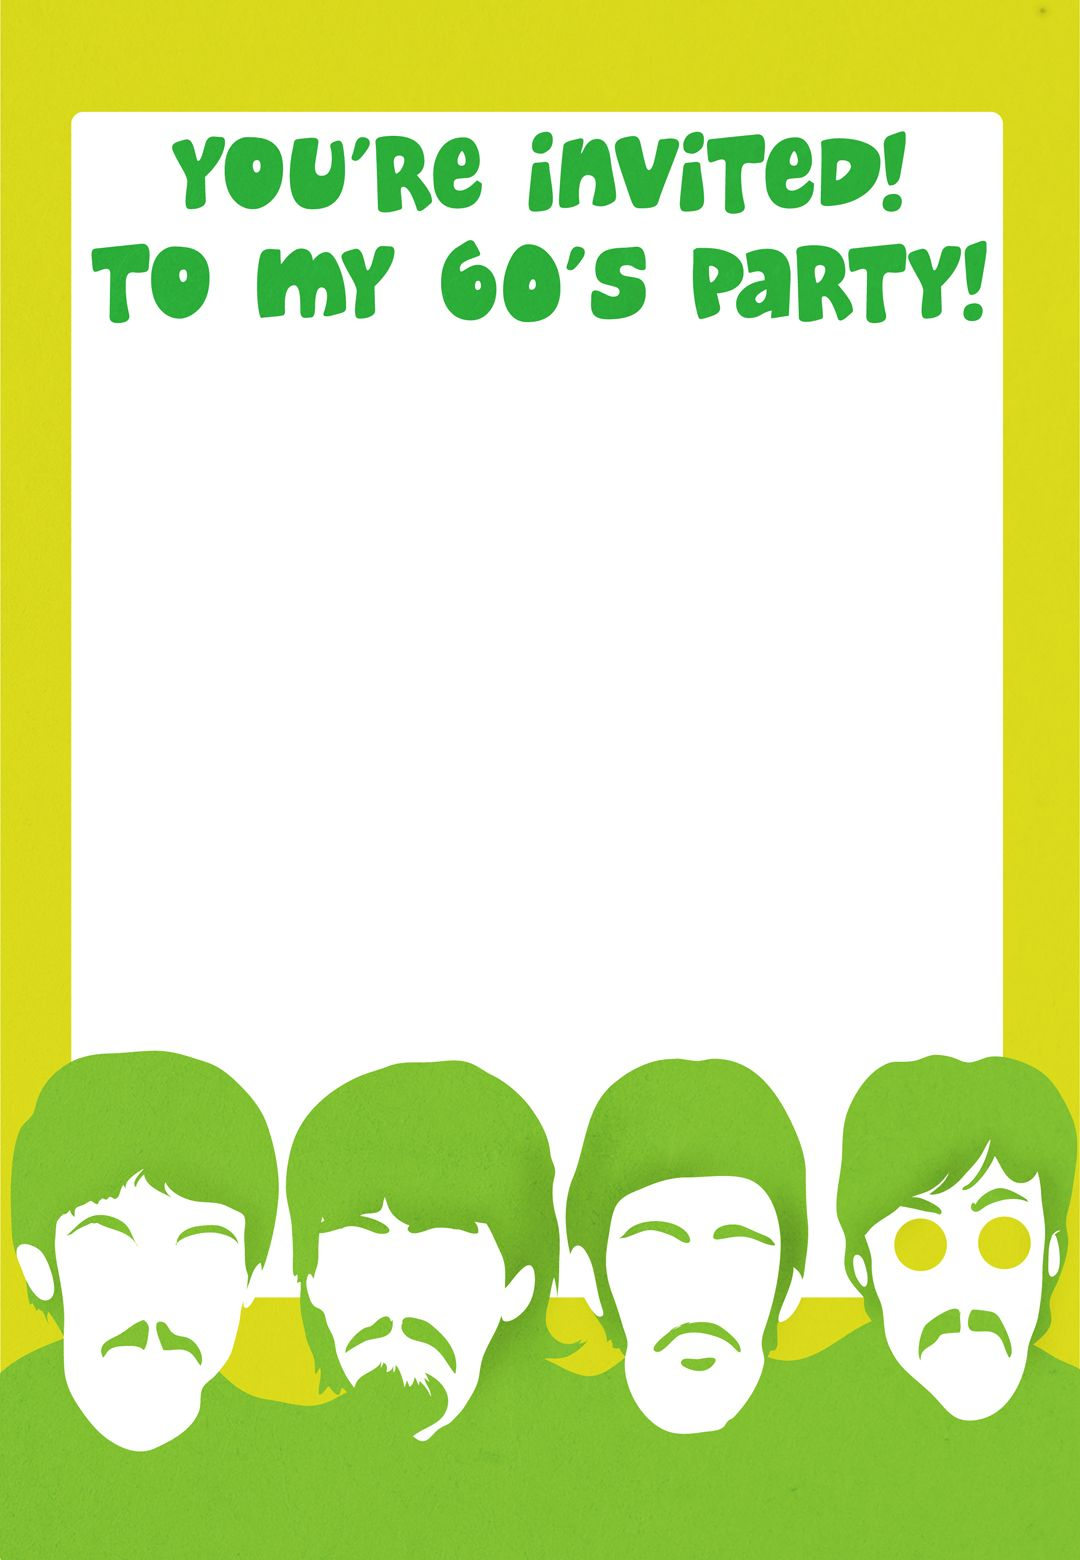 Free Printable 60S Party Invitation – Beatles Party Invitations